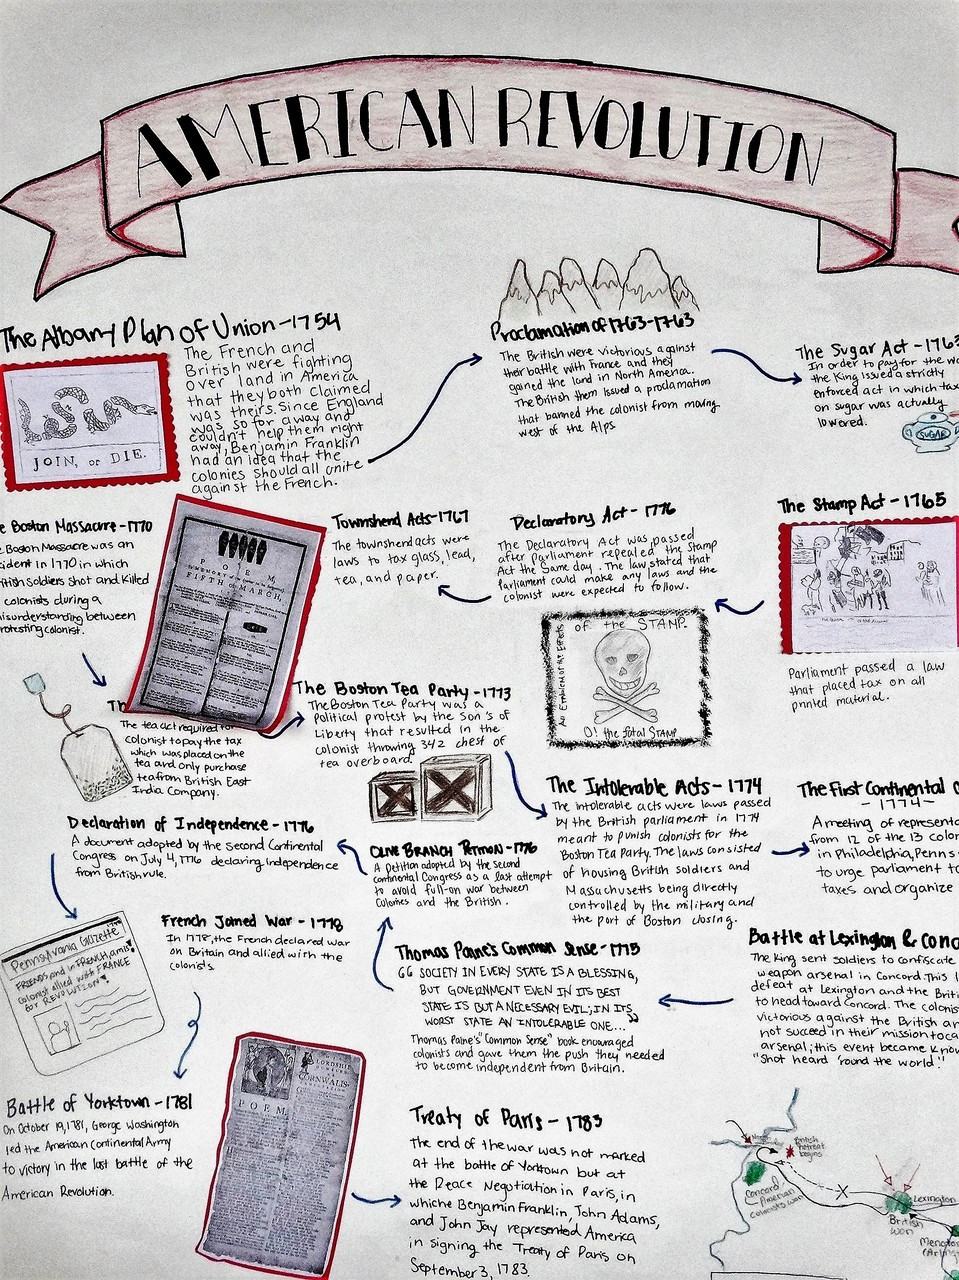 small resolution of Project: American Revolution Annotated Timeline - Amped Up Learning